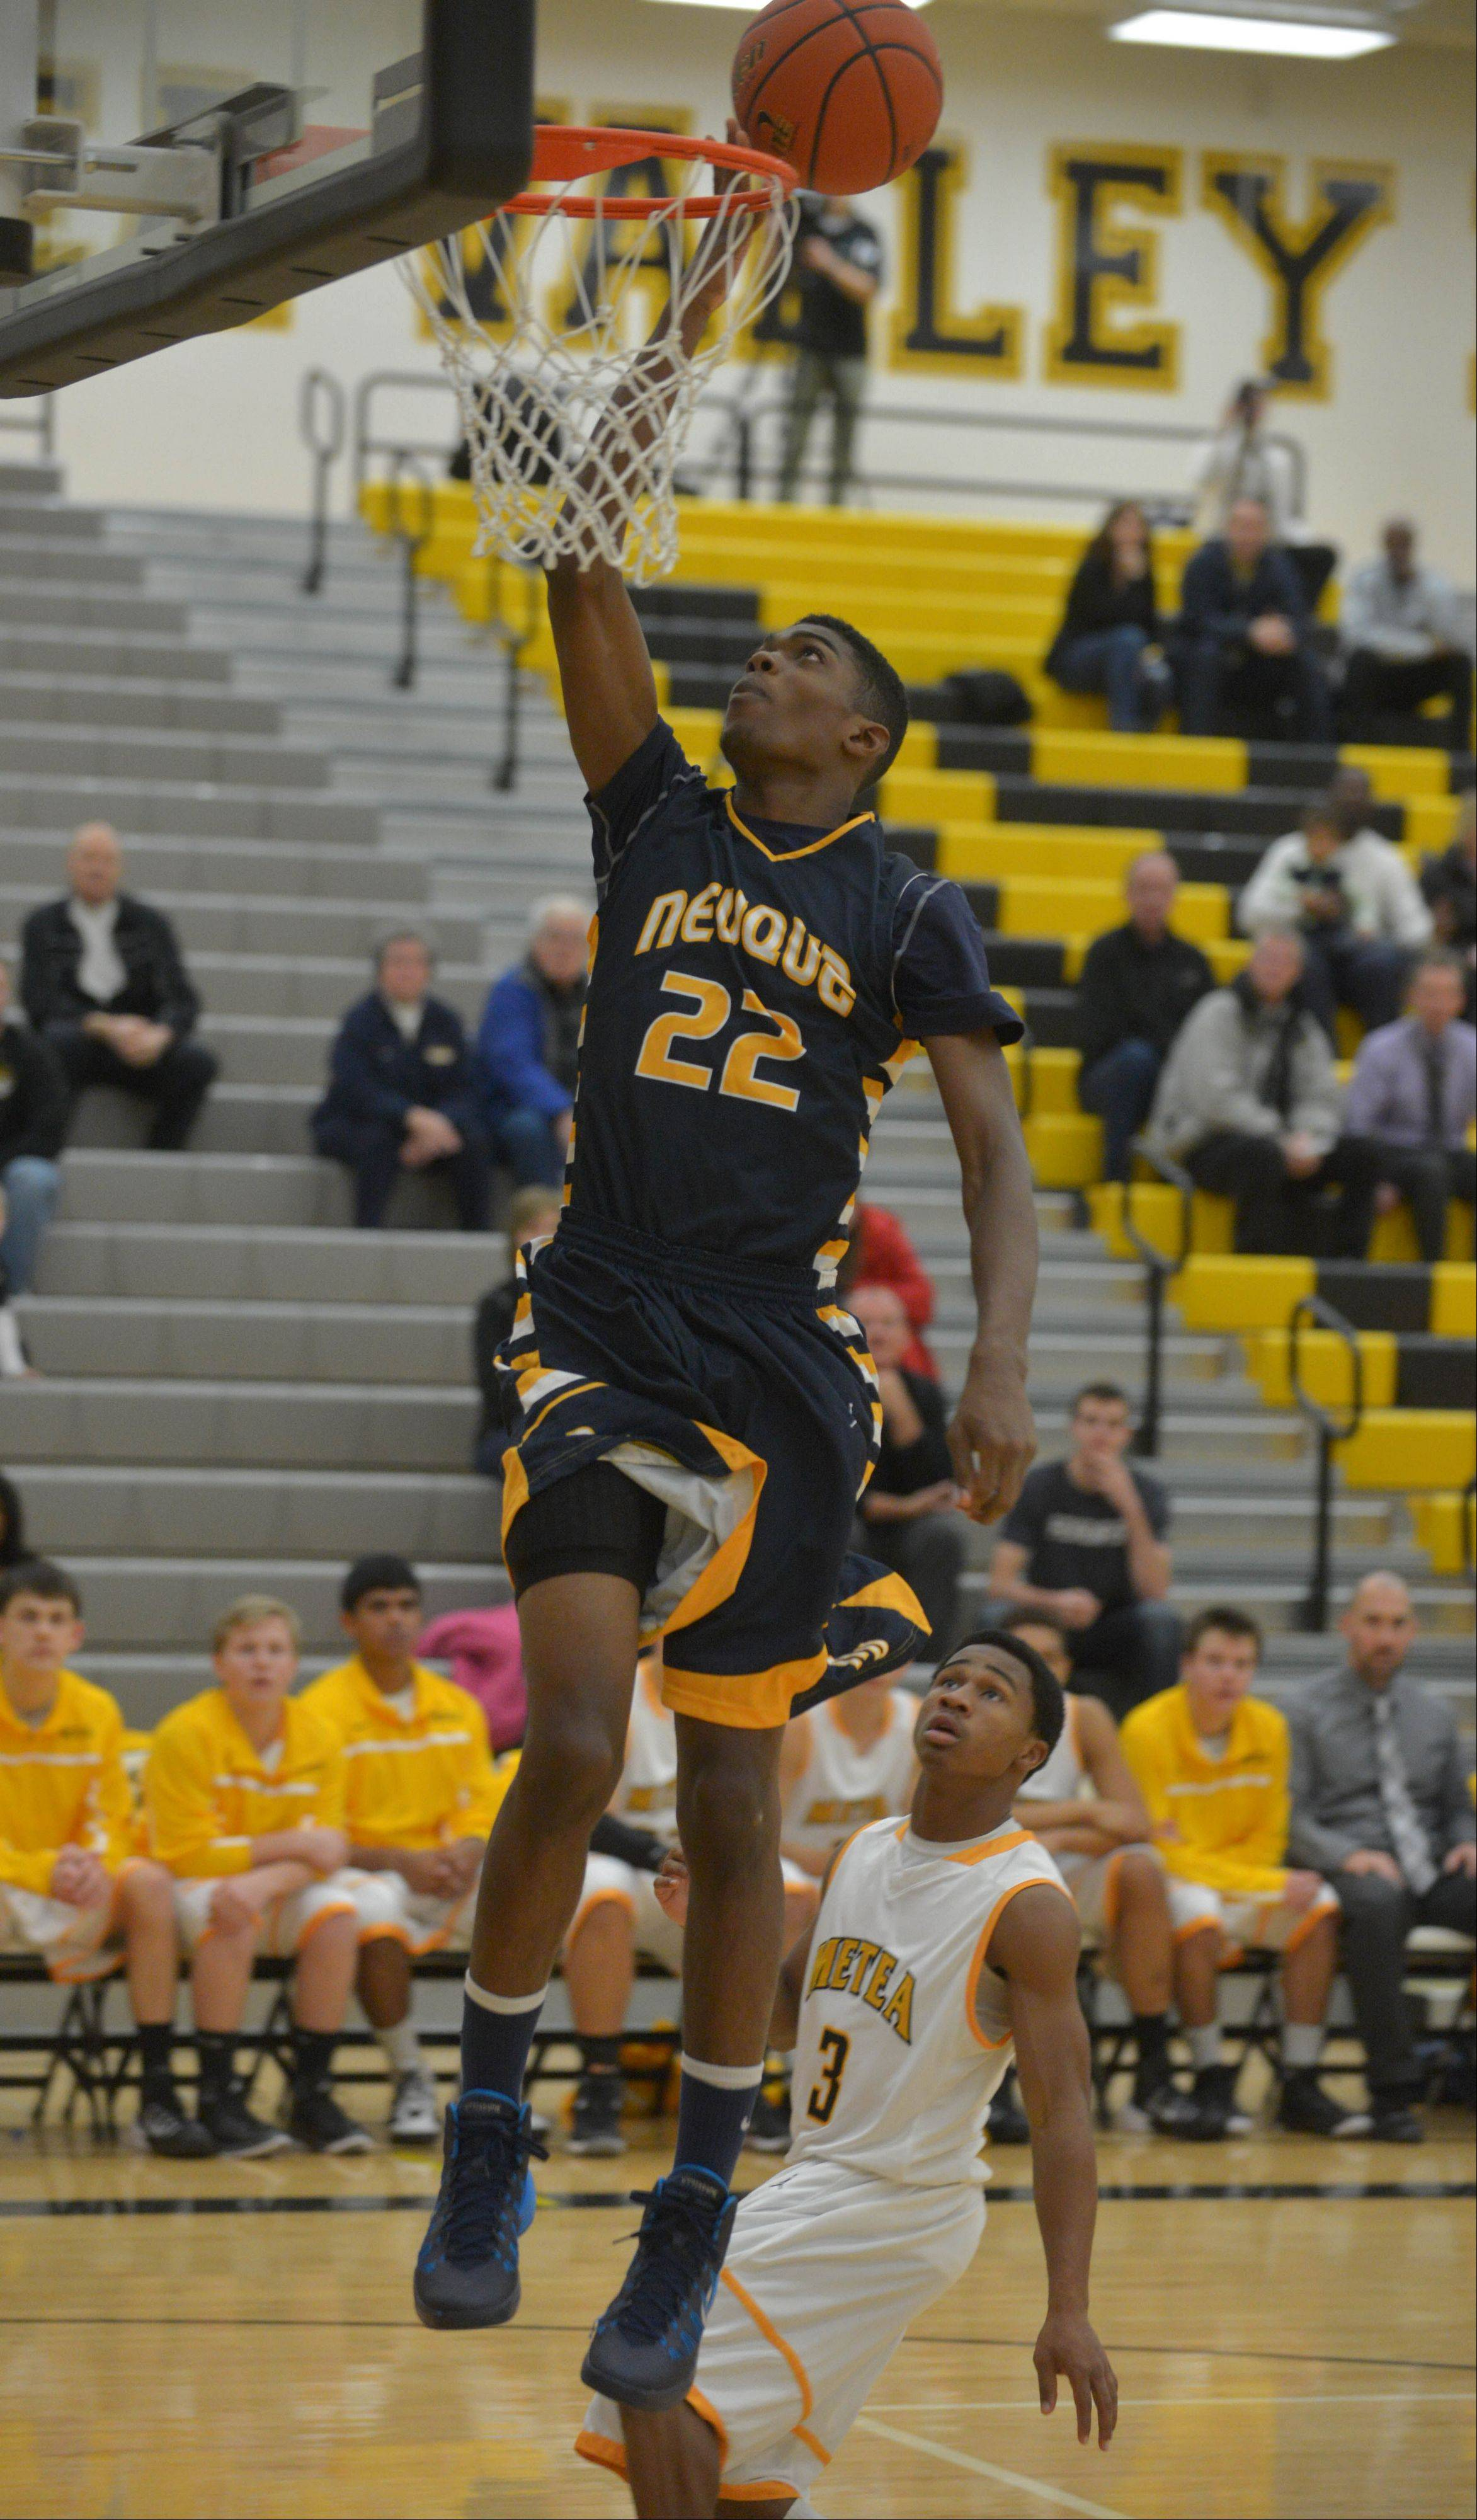 Elijah Robertson of Neuqua Valley takes one to the net during the Neuqua Valley at Metea Valley boys basketball game Thursday.